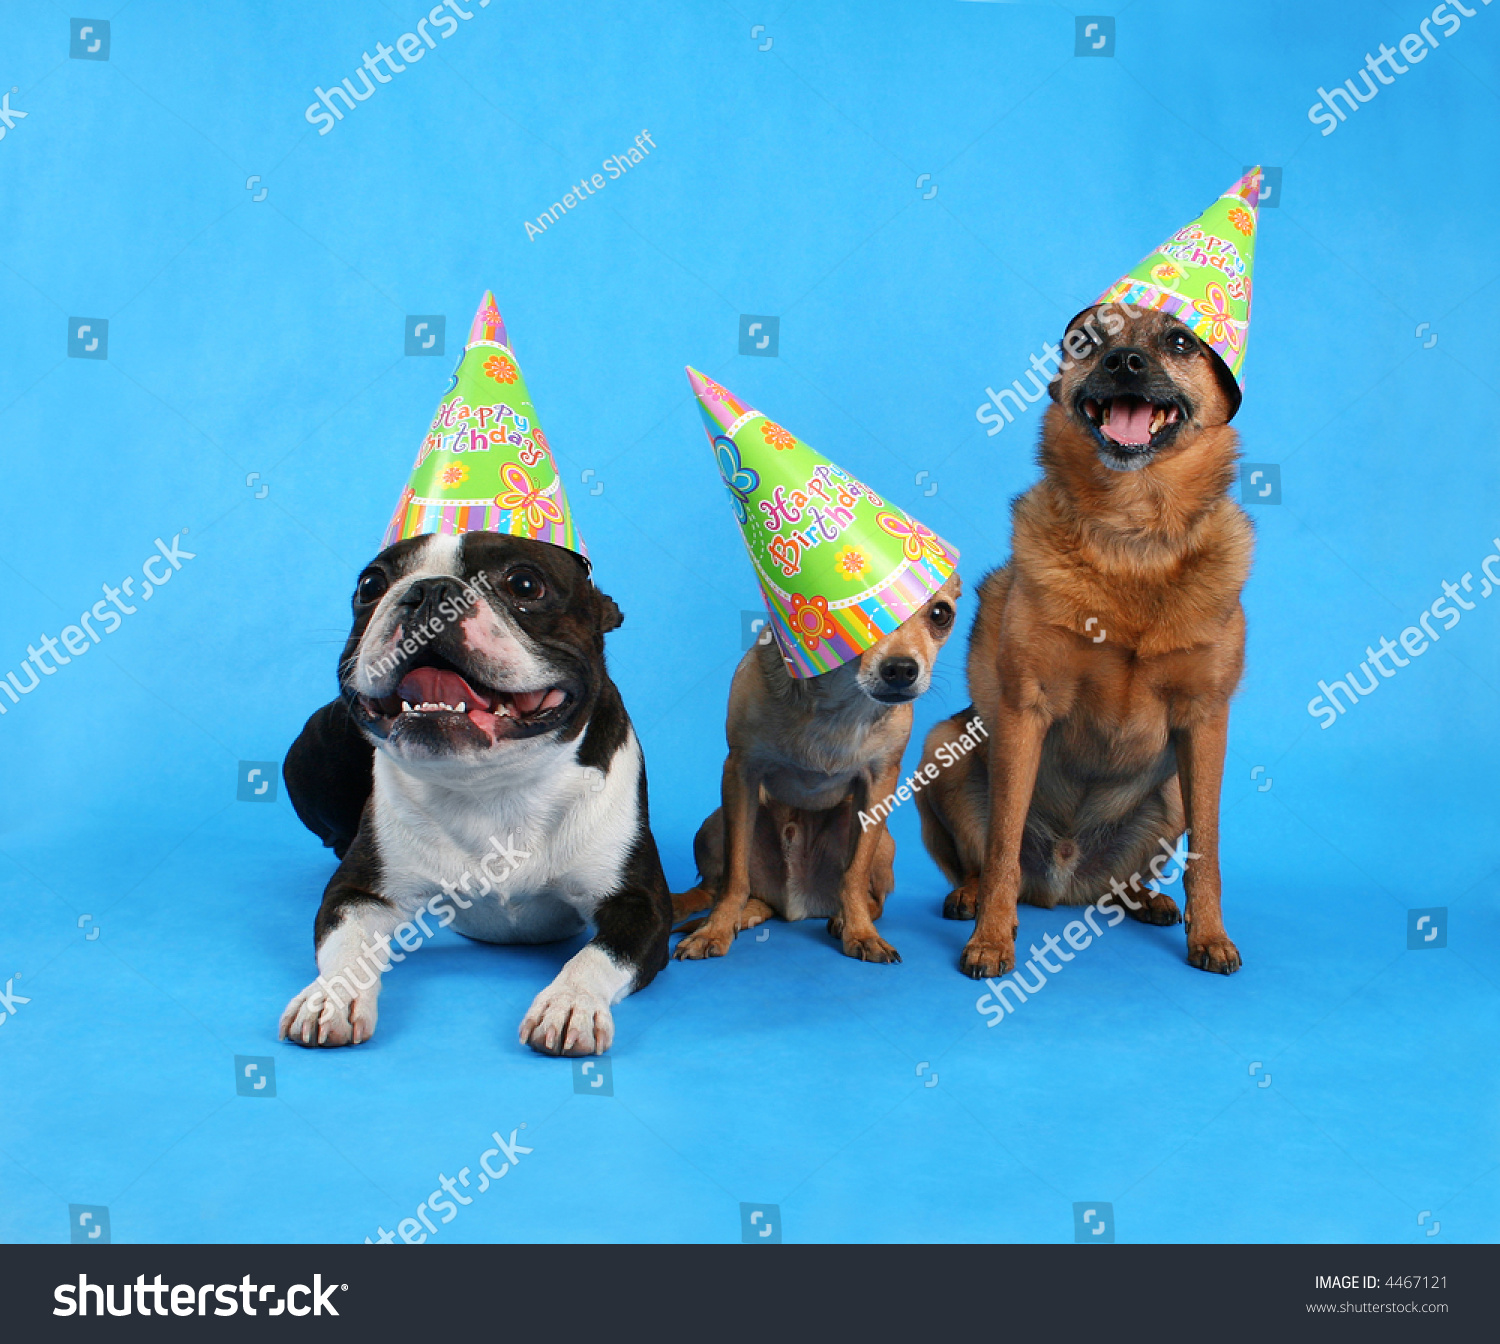 Three Dogs At A Birthday Celebration With Hats On